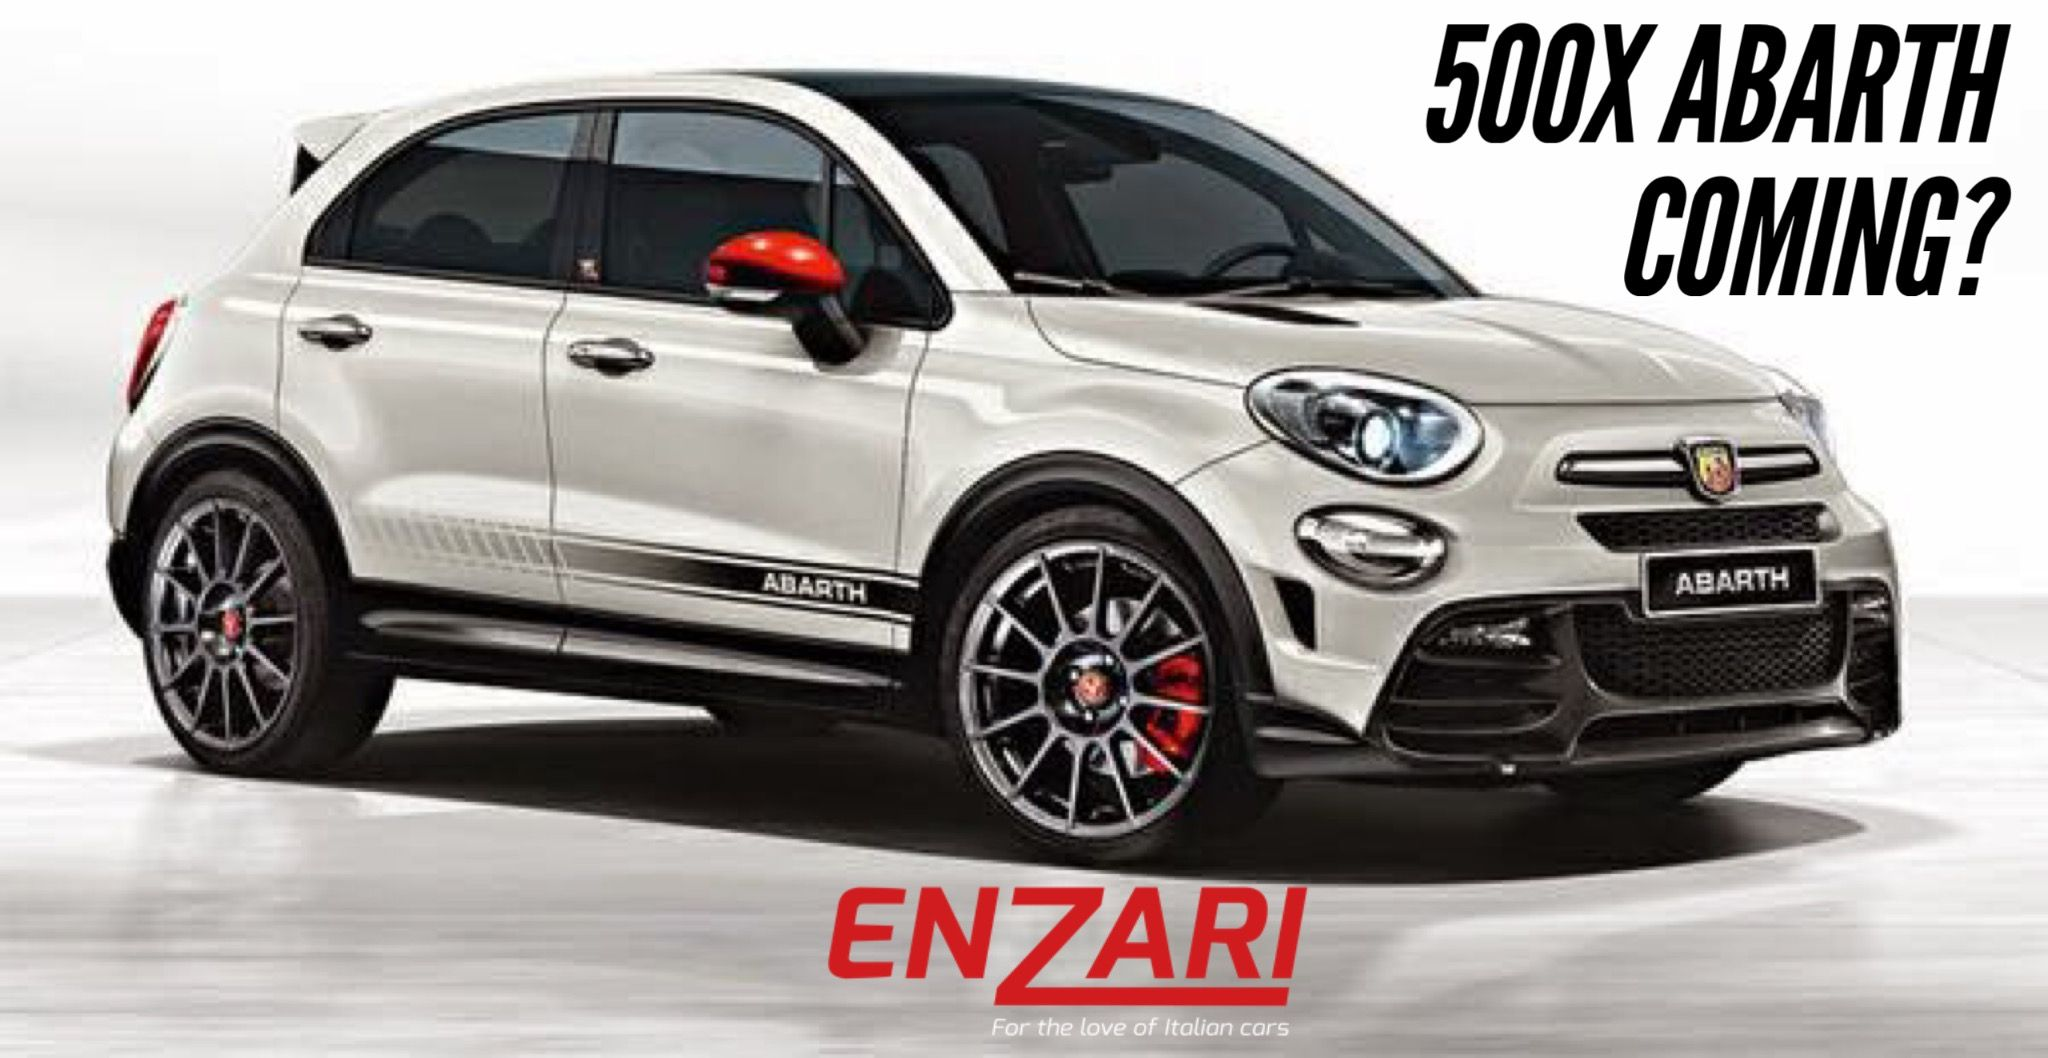 Is there a Abarth 500X on the way? #abarth #500x #enzari #cars #news